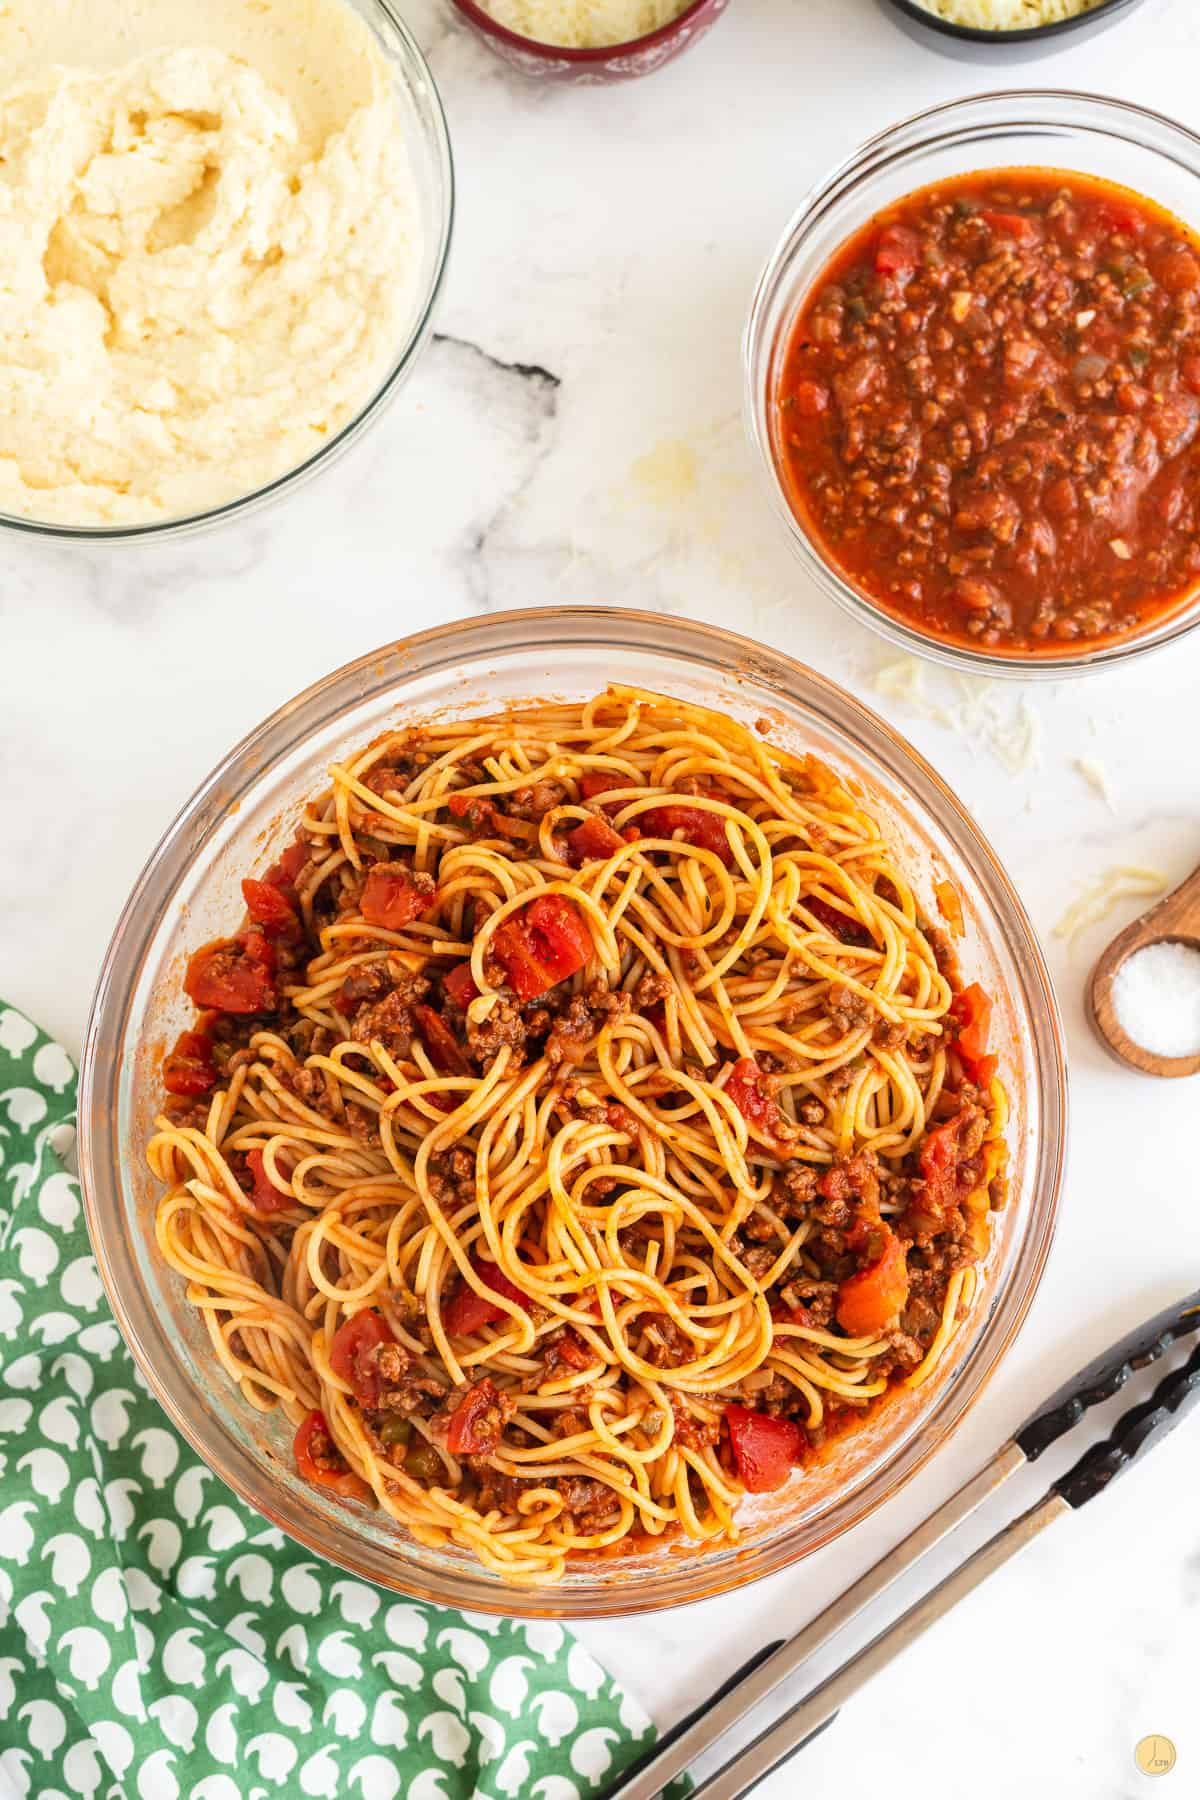 bowl of spaghetti and sauce